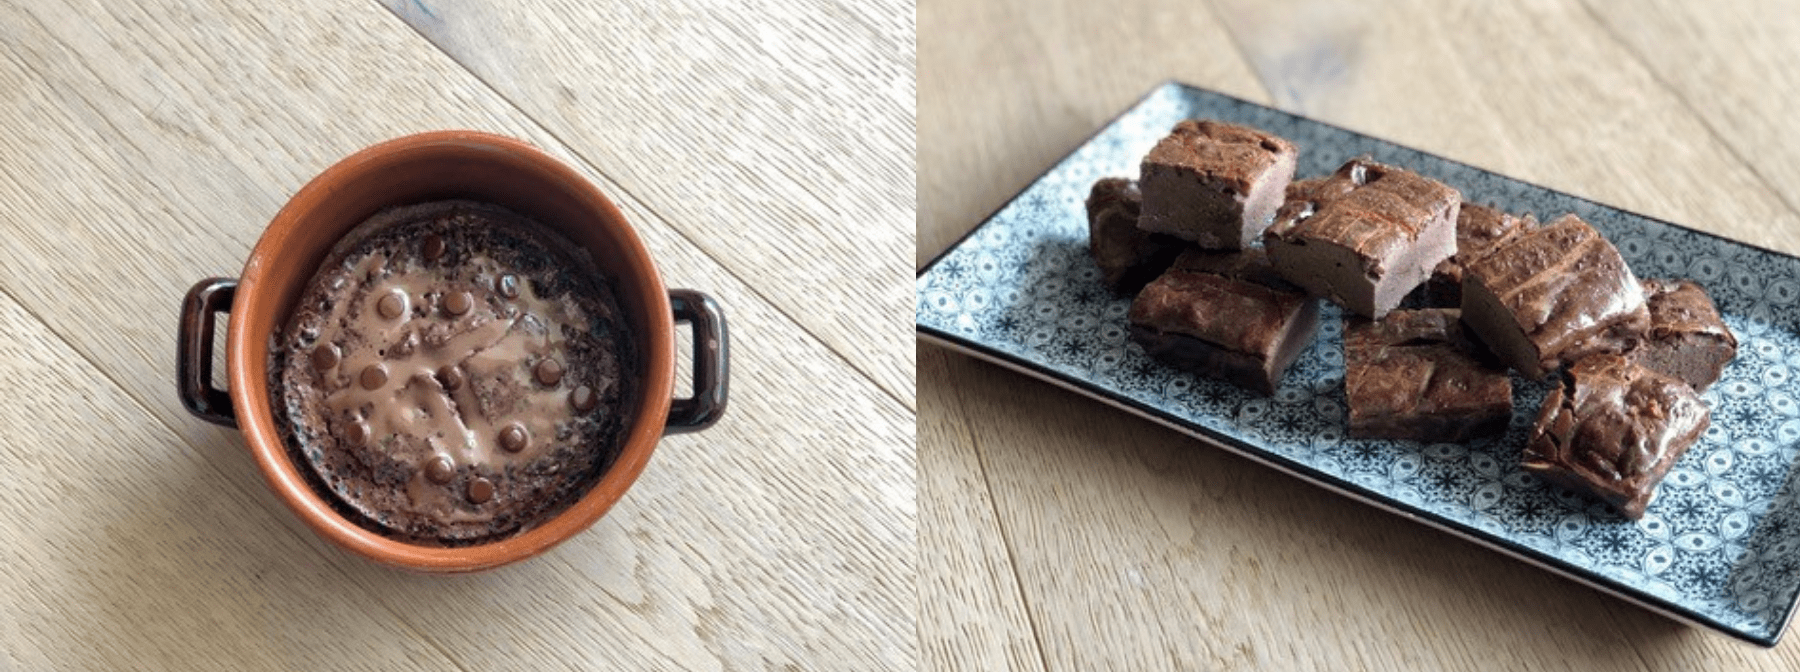 2 Ricette Brownies Proteici